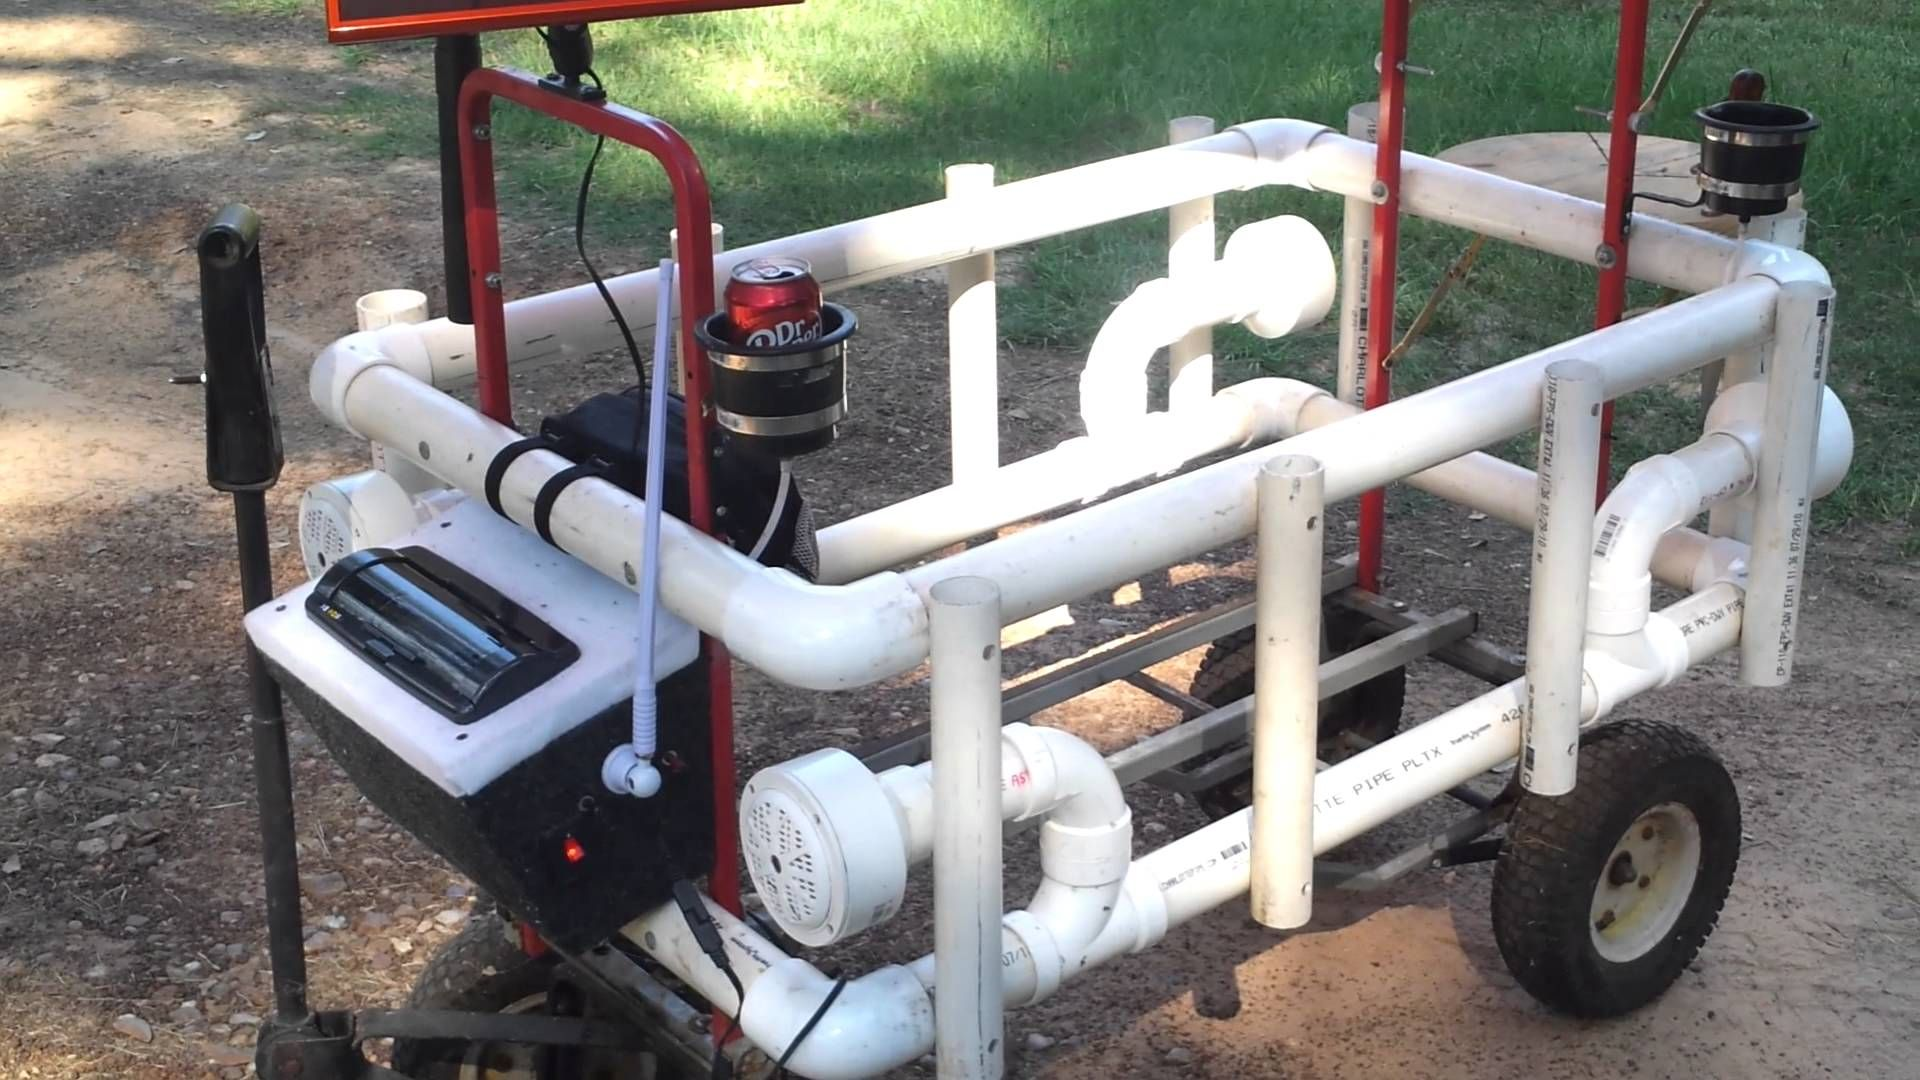 Pvc projects pvc projects pinterest fishing cart and for Homemade fishing cart